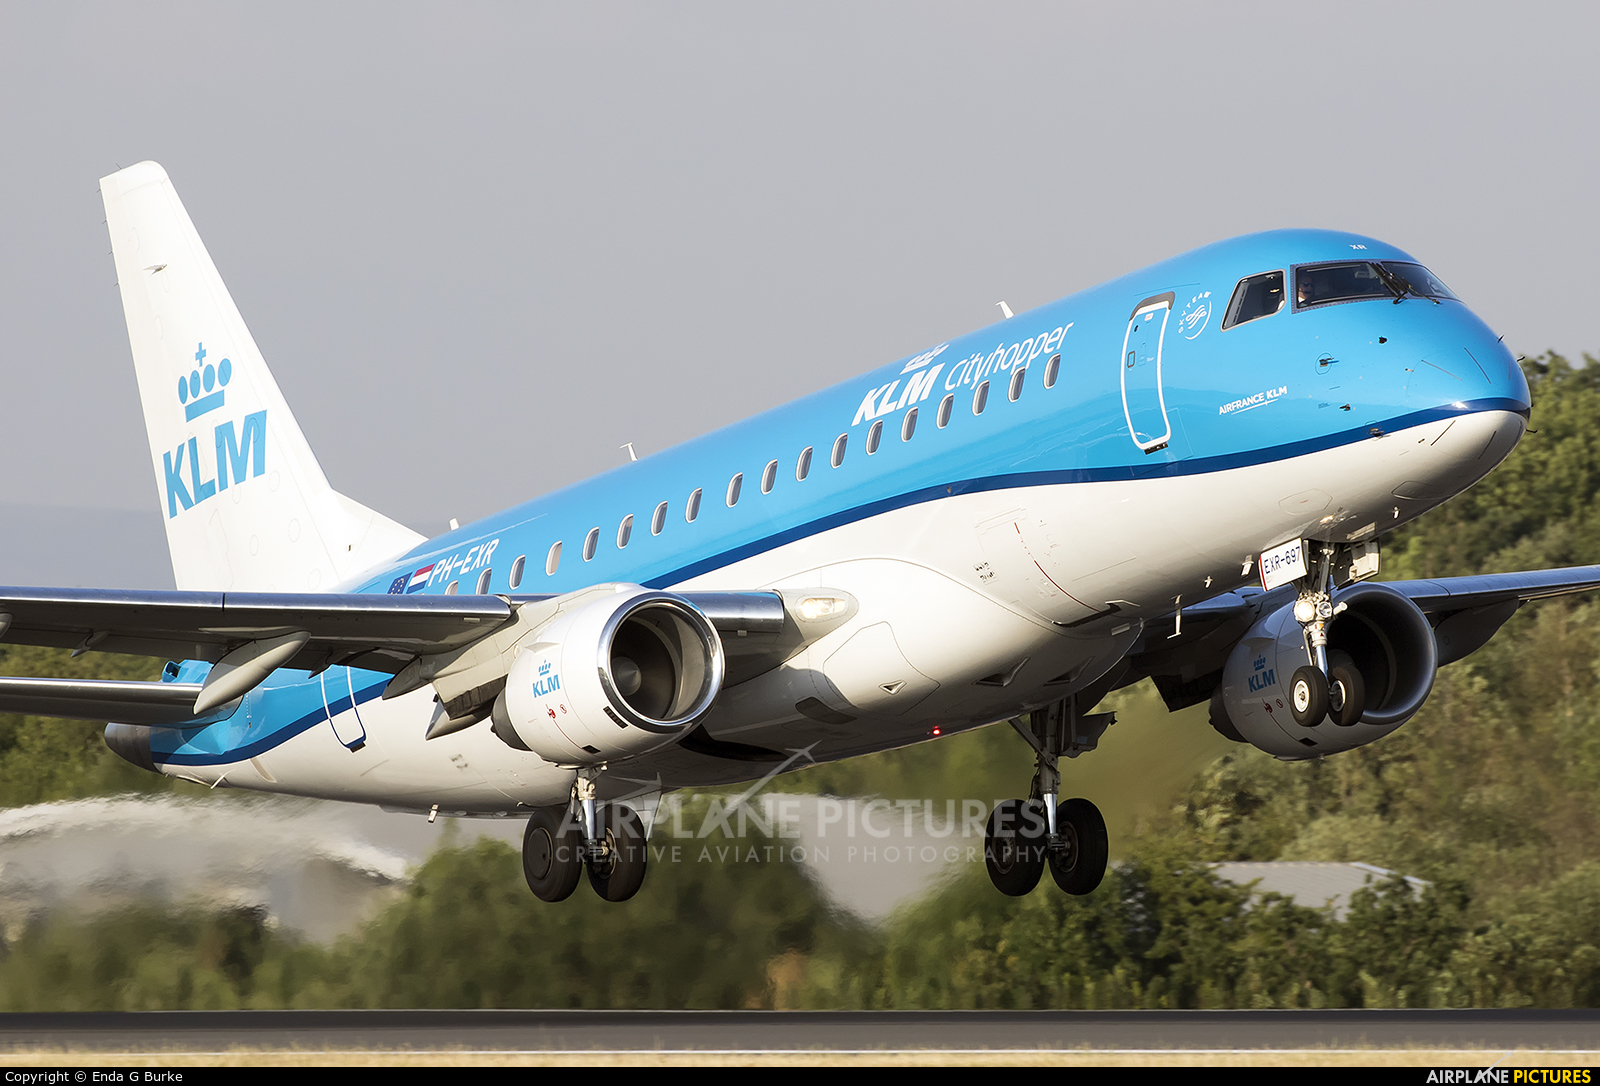 KLM Cityhopper PH-EXR aircraft at Manchester